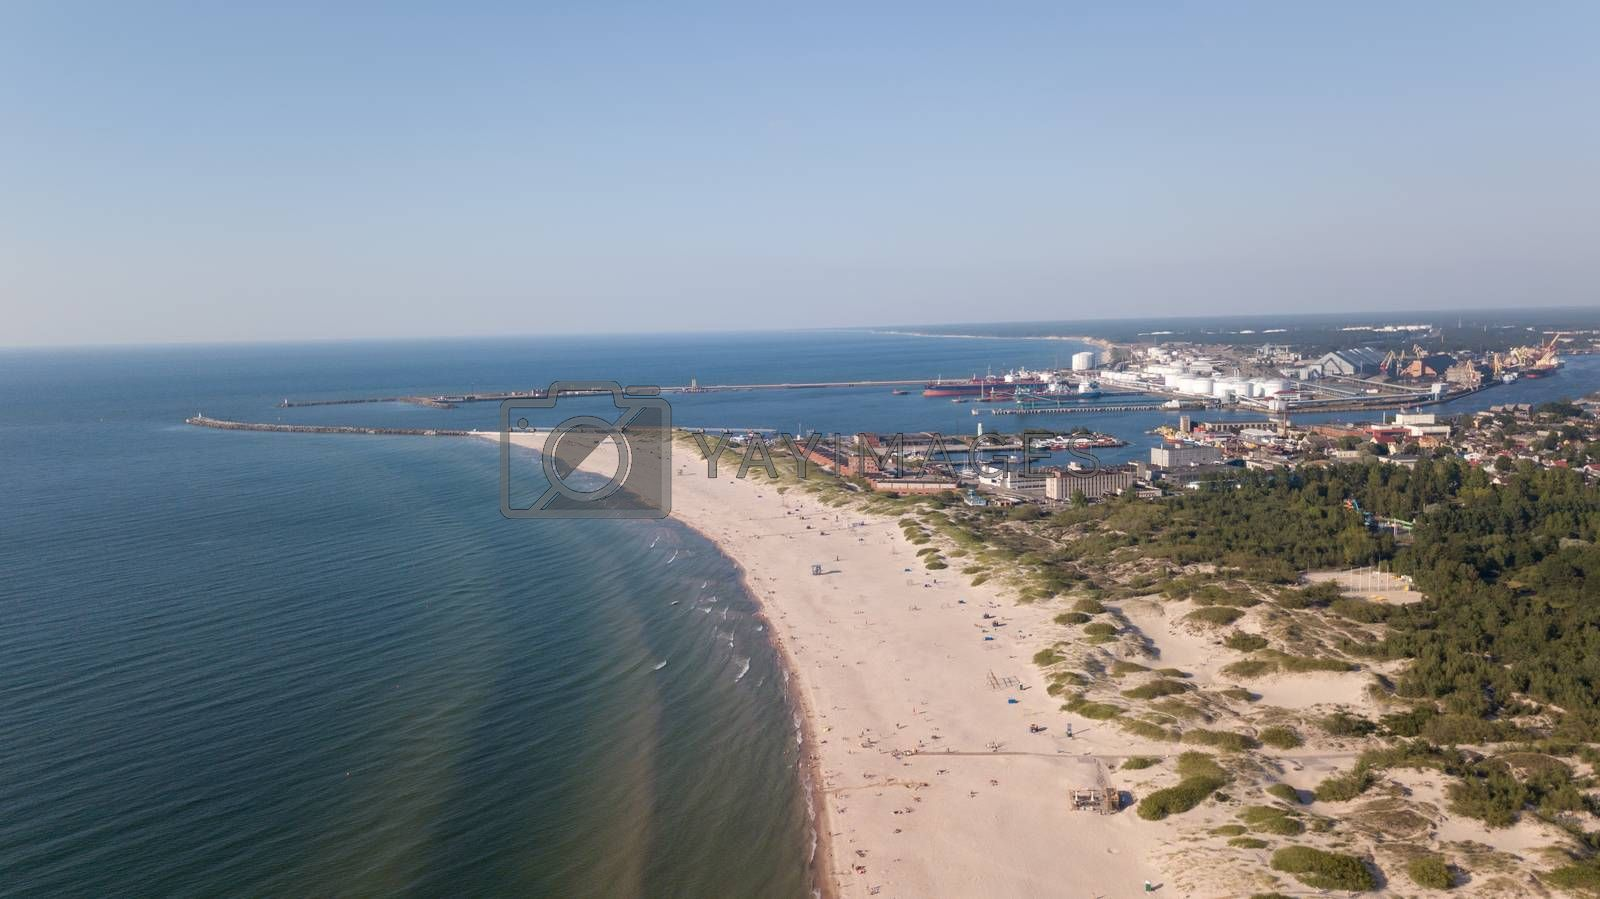 Royalty free image of Baltic Sea coast beach Ventspils Kurzeme aerial drone top view by desant7474